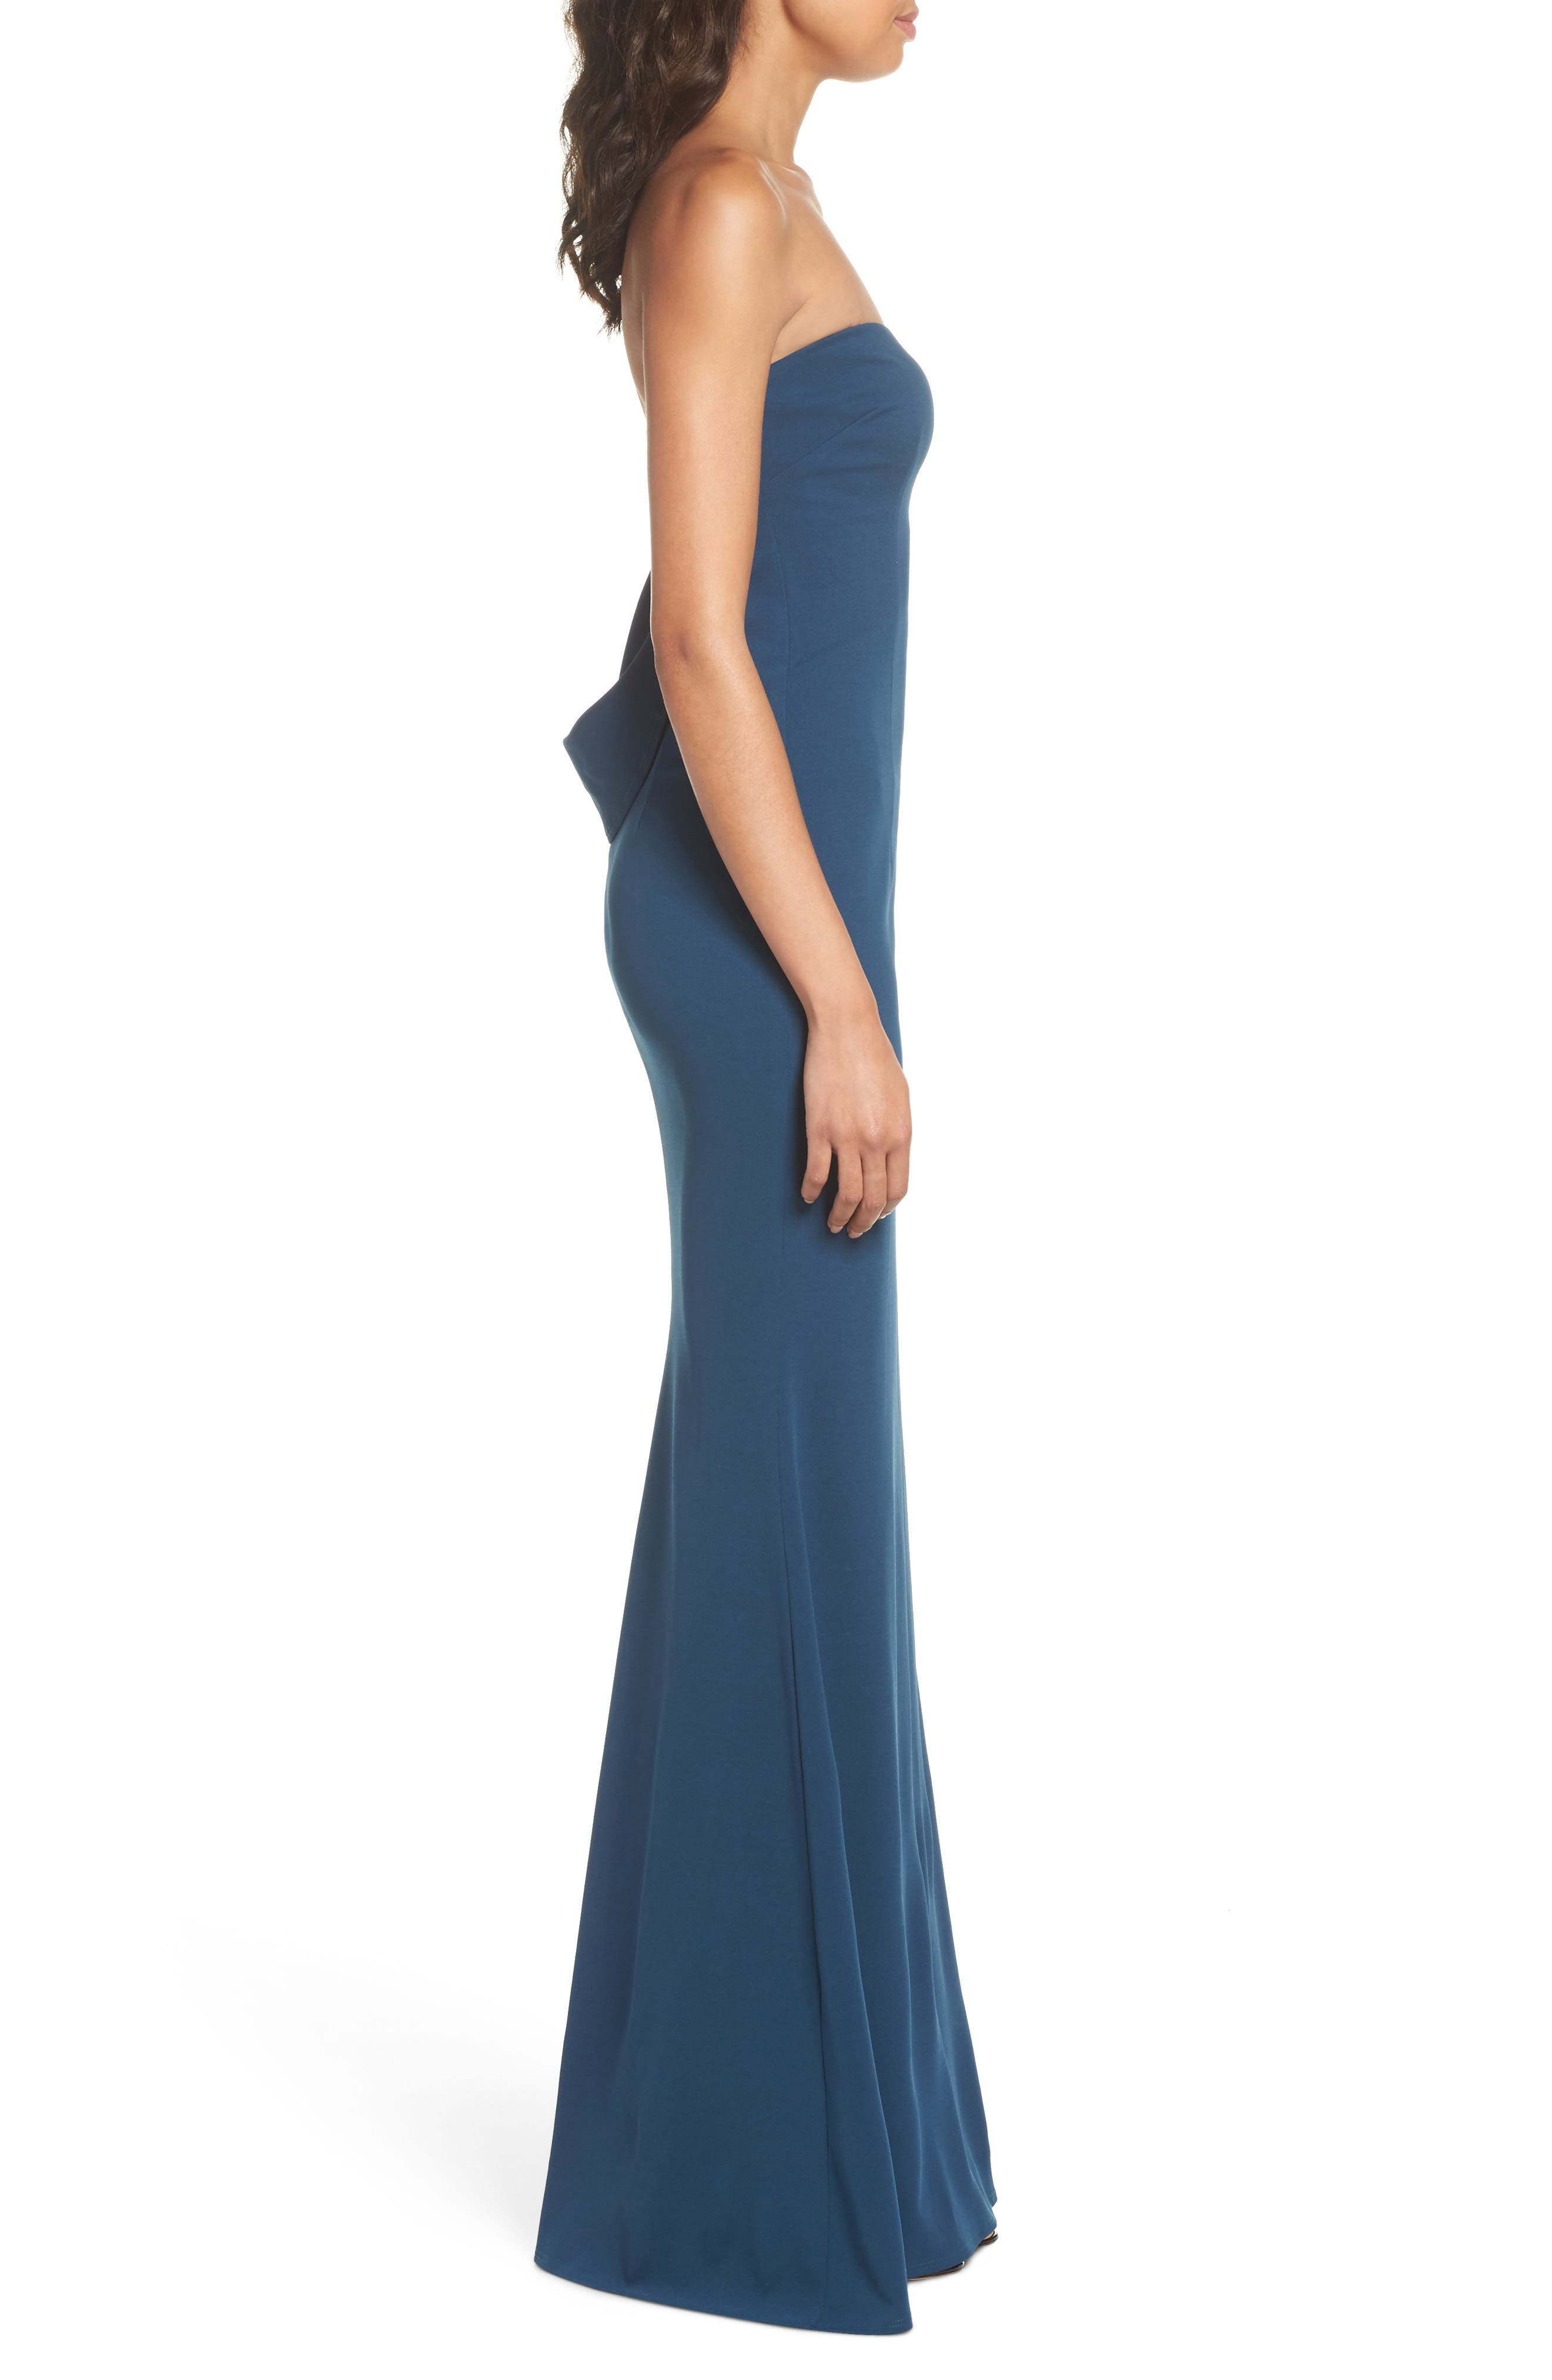 Mary Kate Strapless Cutout Back Gown,                             Alternate thumbnail 3, color,                             TEAL